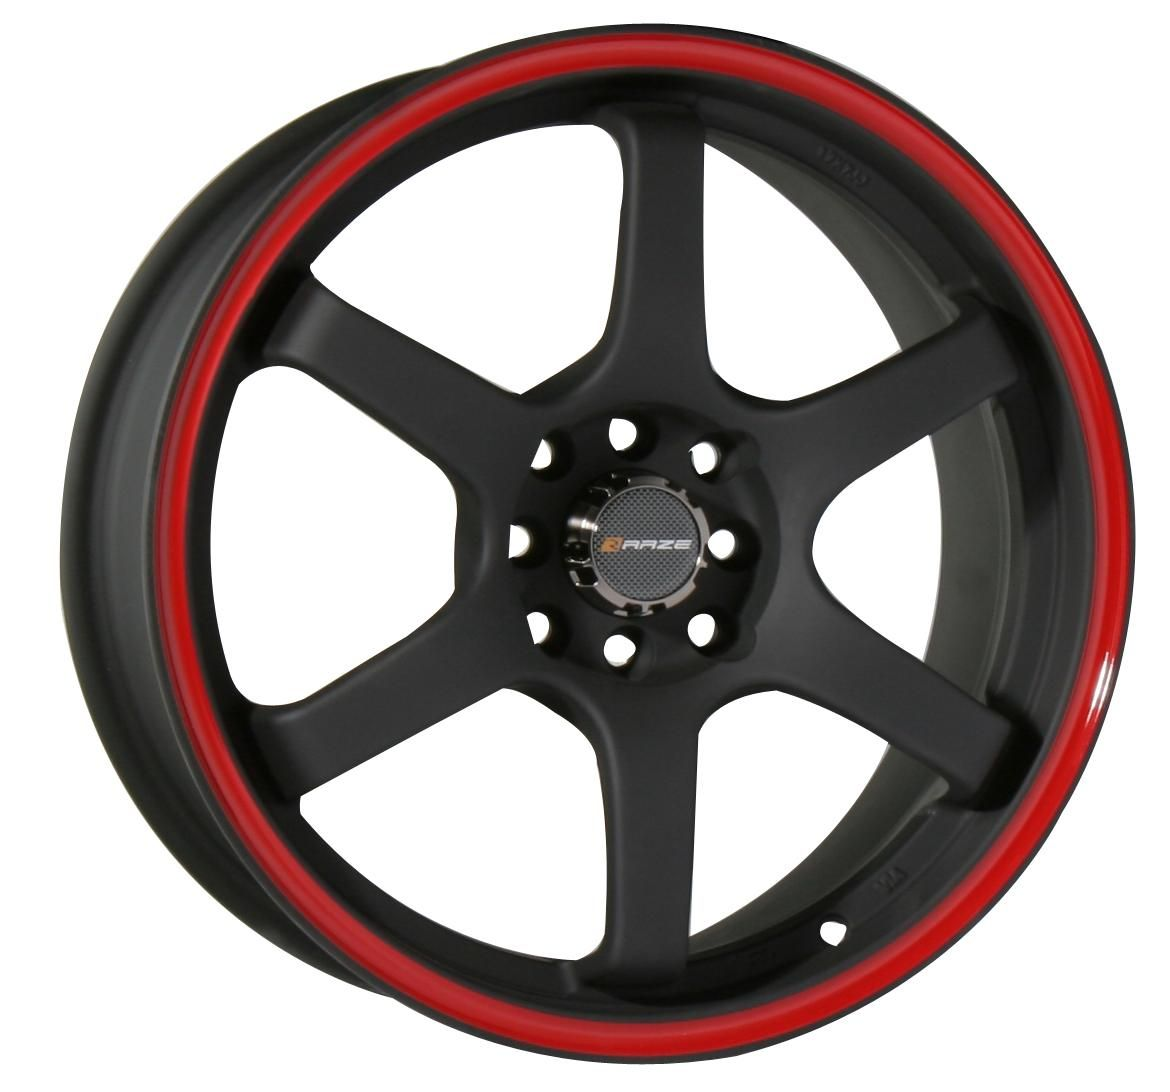 17 Black Wheels Rims Honda Accord Civic Fit Integra Yaris Sentra